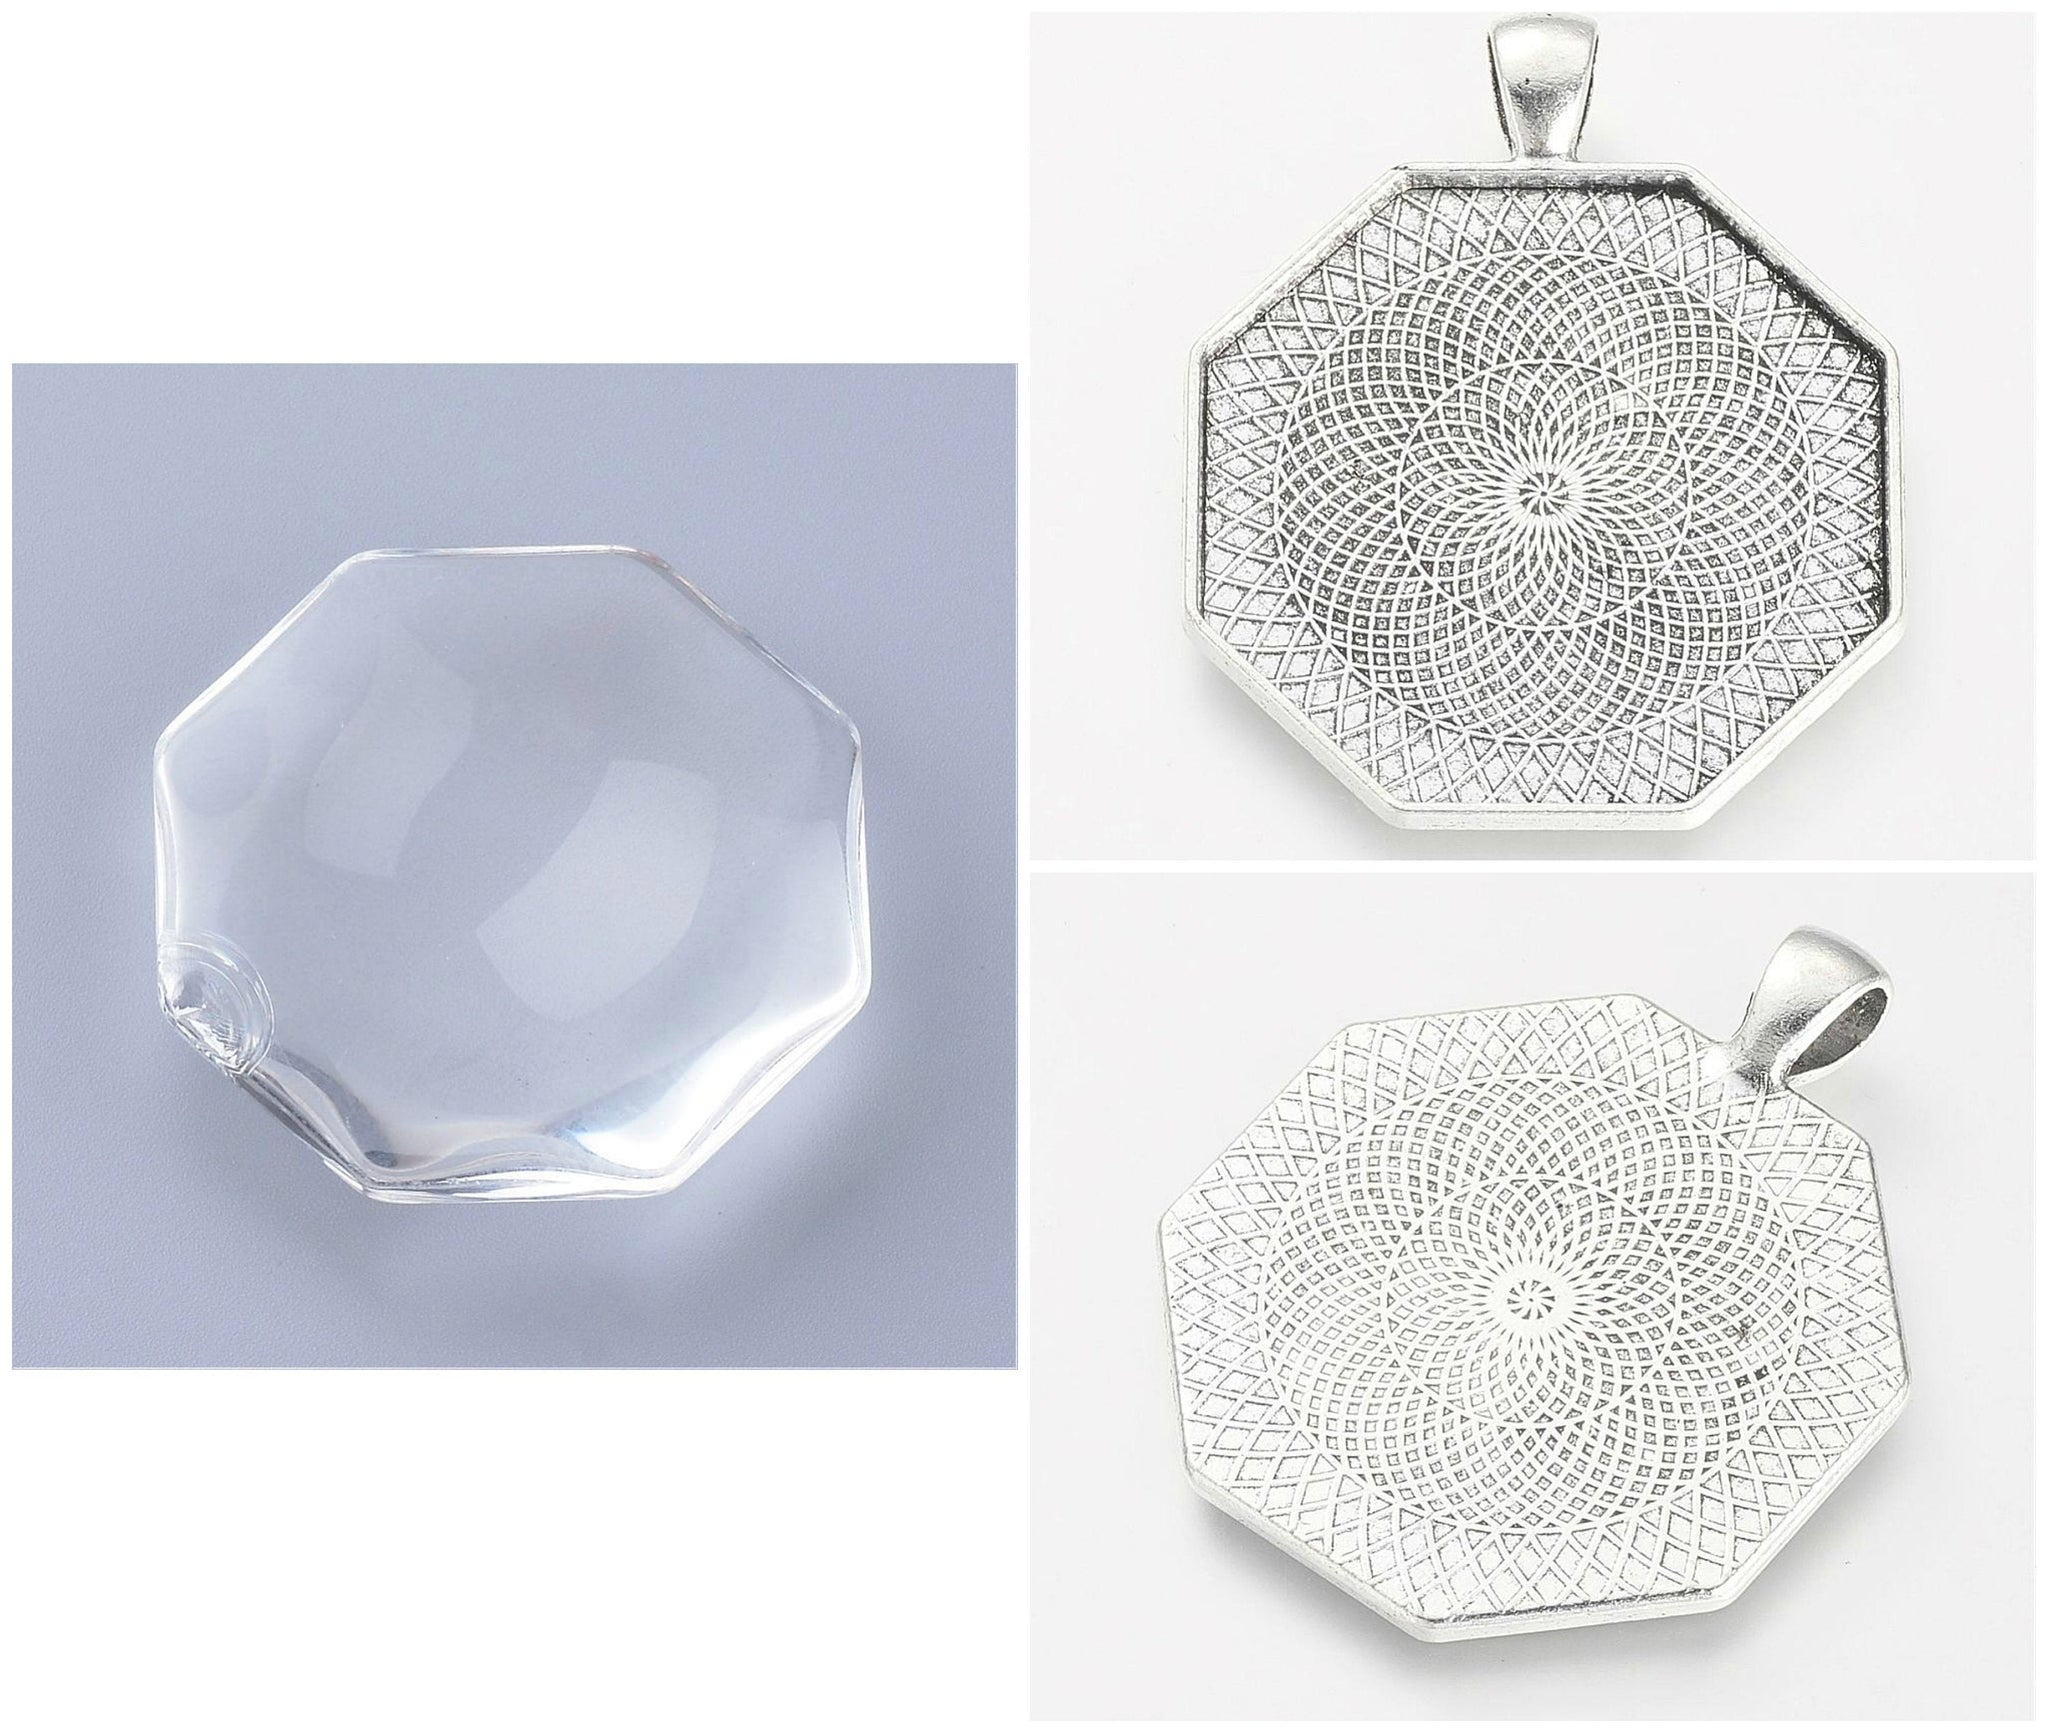 5 Pendant Bezel Tray Sets - Matching Clear Glass Cabochon - Octagon Shape - 35mm x 35mm - Silver